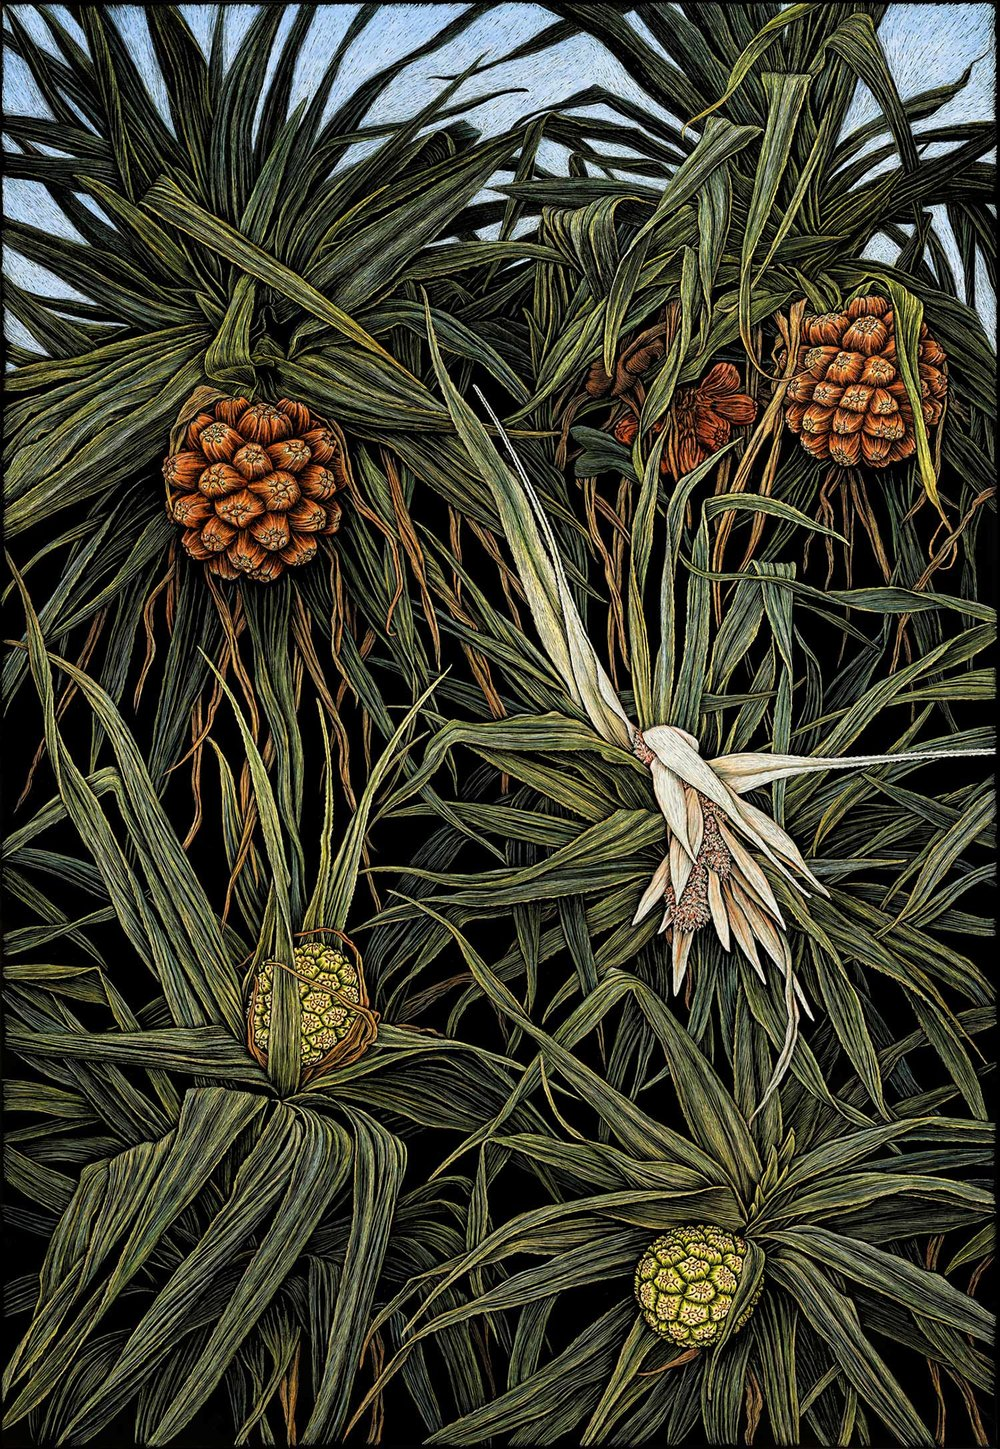 pandanus-in-flower-colour-engraving-rachel-newling.jpg